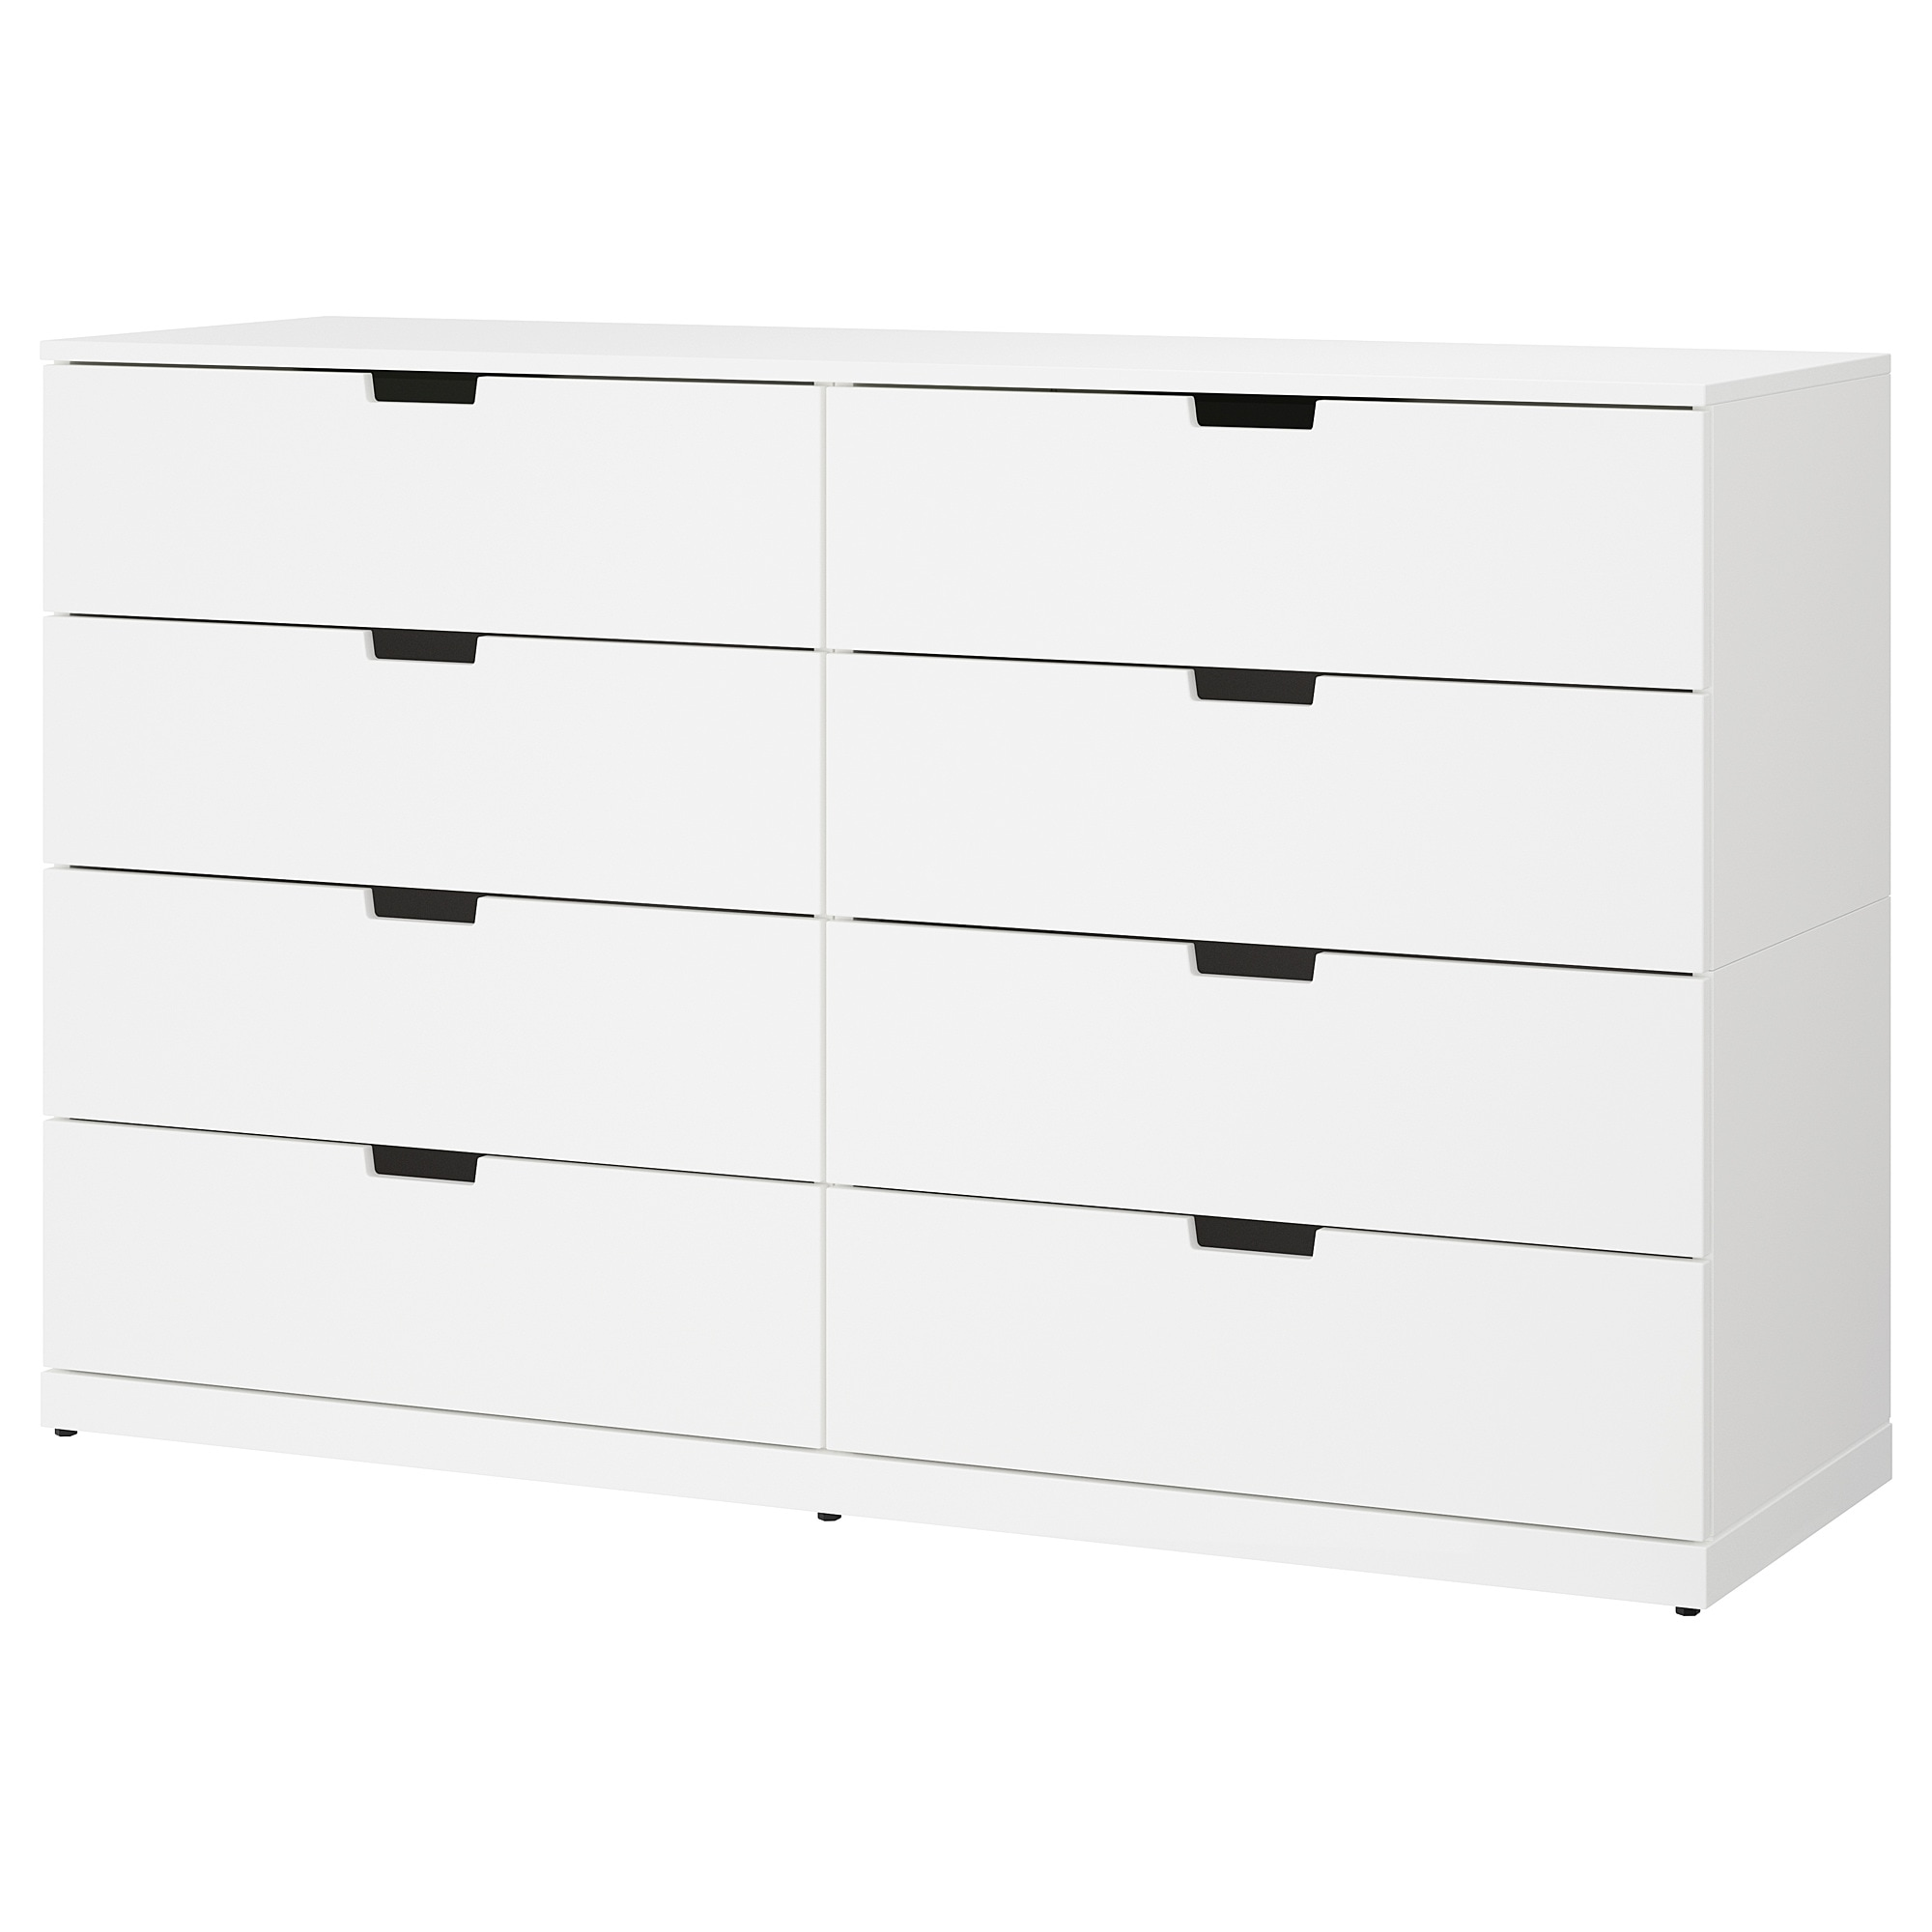 products for collections kit panels dresser suit ikea styl furniture hemnes left to suitable drawer chest panel img